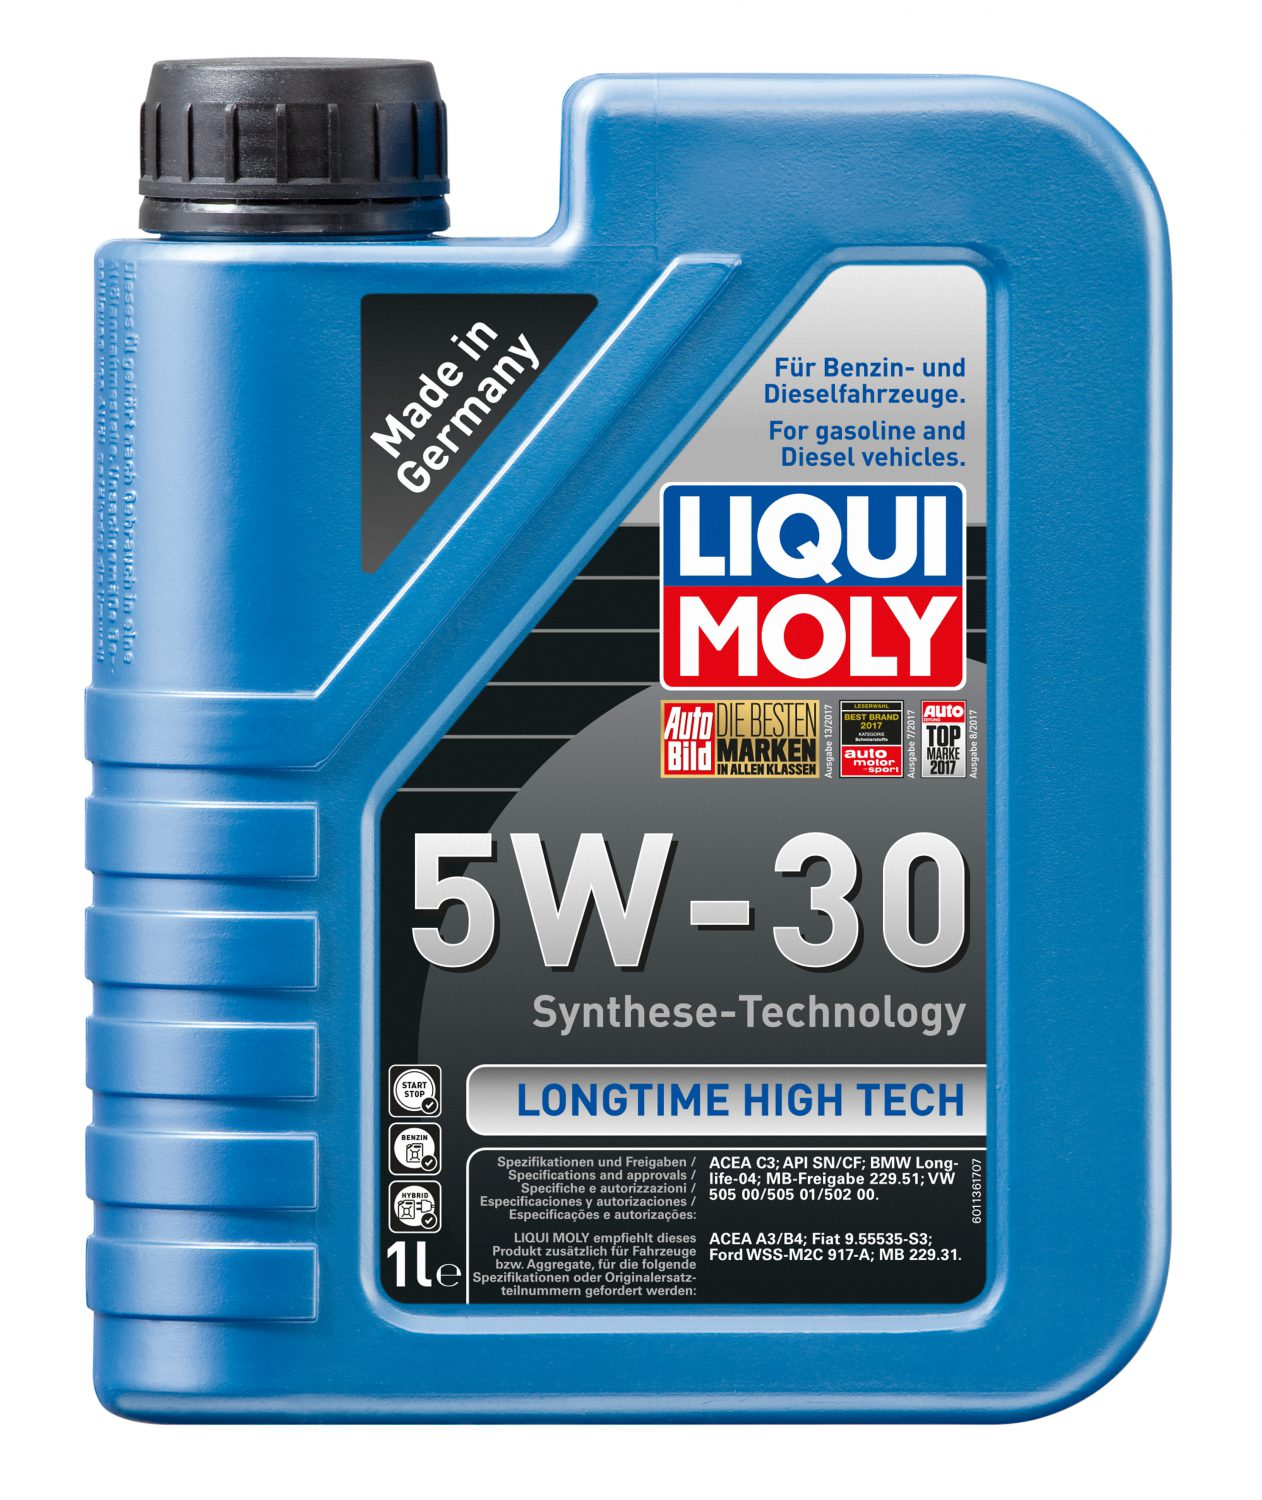 liqui moly longtime high tech 5w 30 meister werks. Black Bedroom Furniture Sets. Home Design Ideas